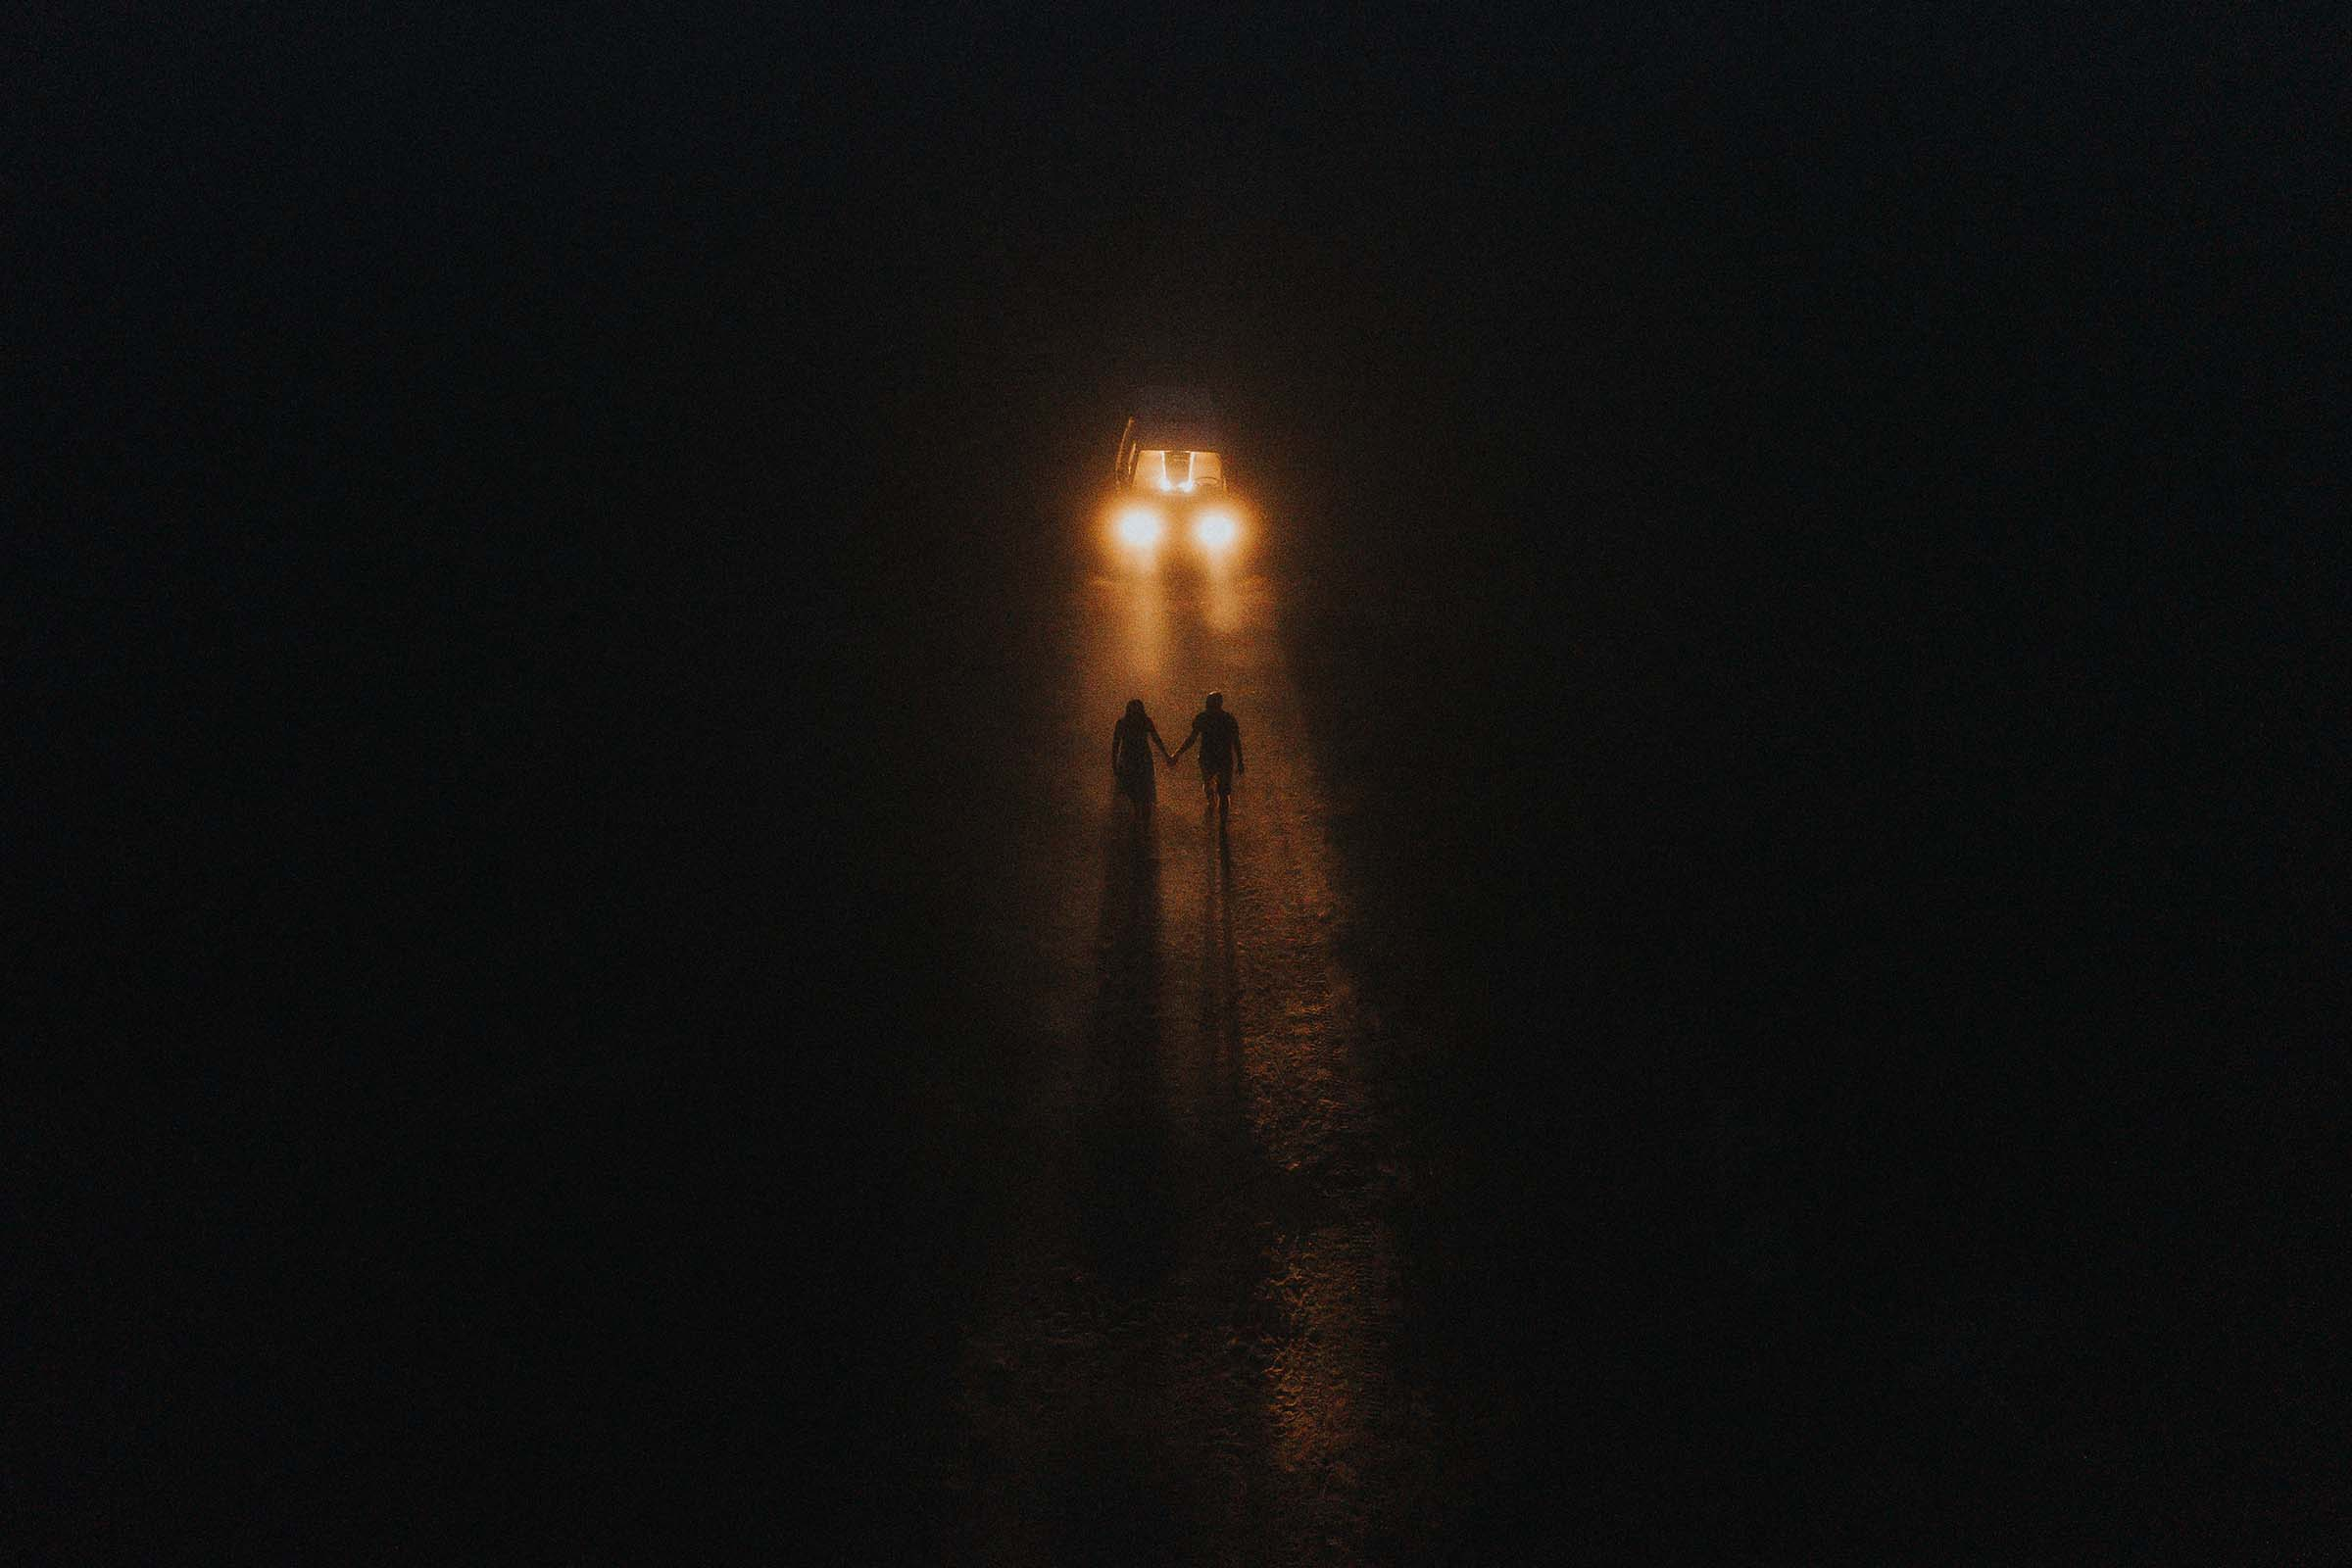 night photo couple walking away from the van headlights on